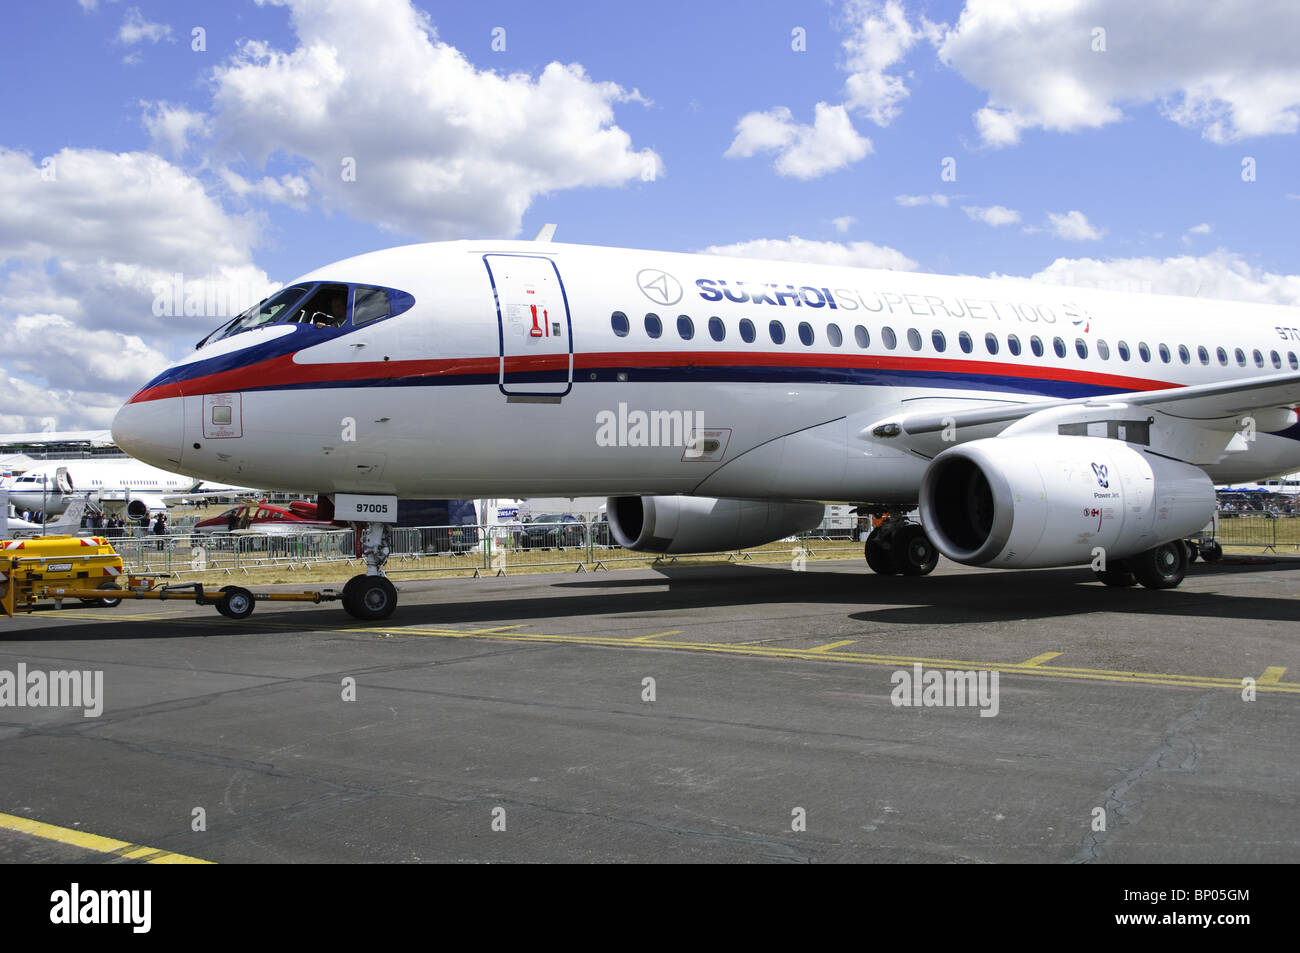 Sukhoi Superjet 100 at the Farnborough Airshow - Stock Image